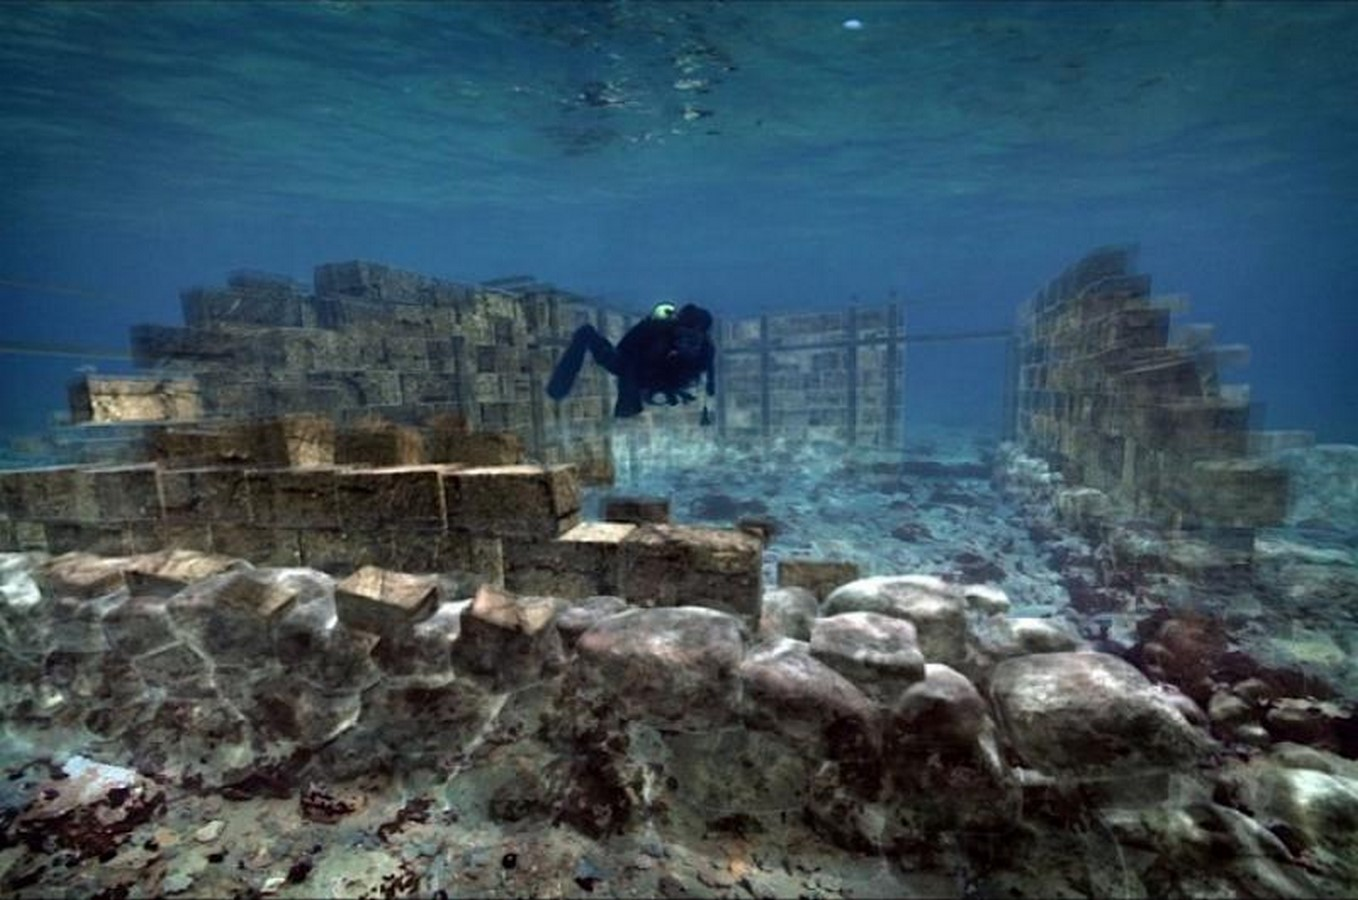 Submerged Cities of the Past - Sheet5